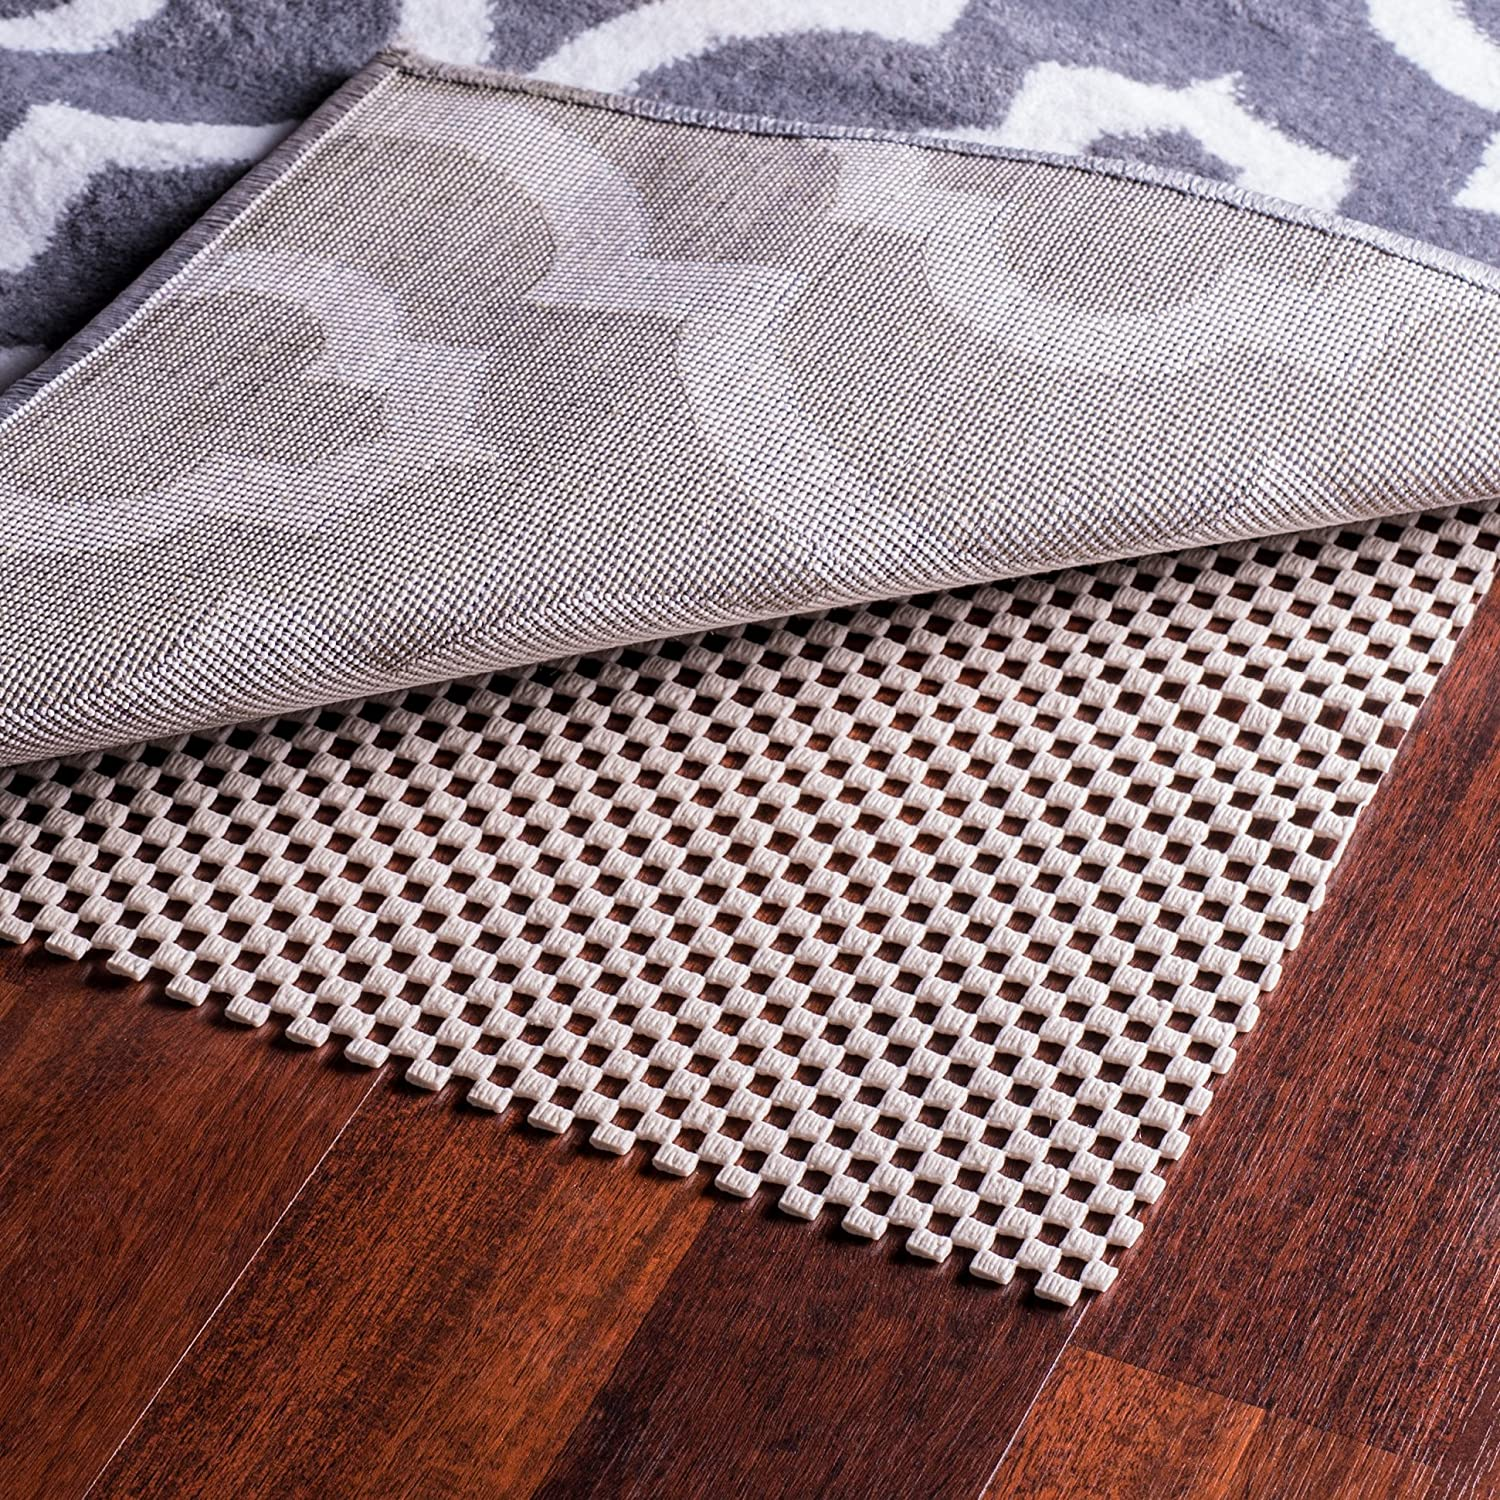 Epica Extra Thick Non-Slip Area Rug Pad 4 x 6 for any hard Surface Floor, Keeps Your Rugs Safe and in Place SYNCHKG124654